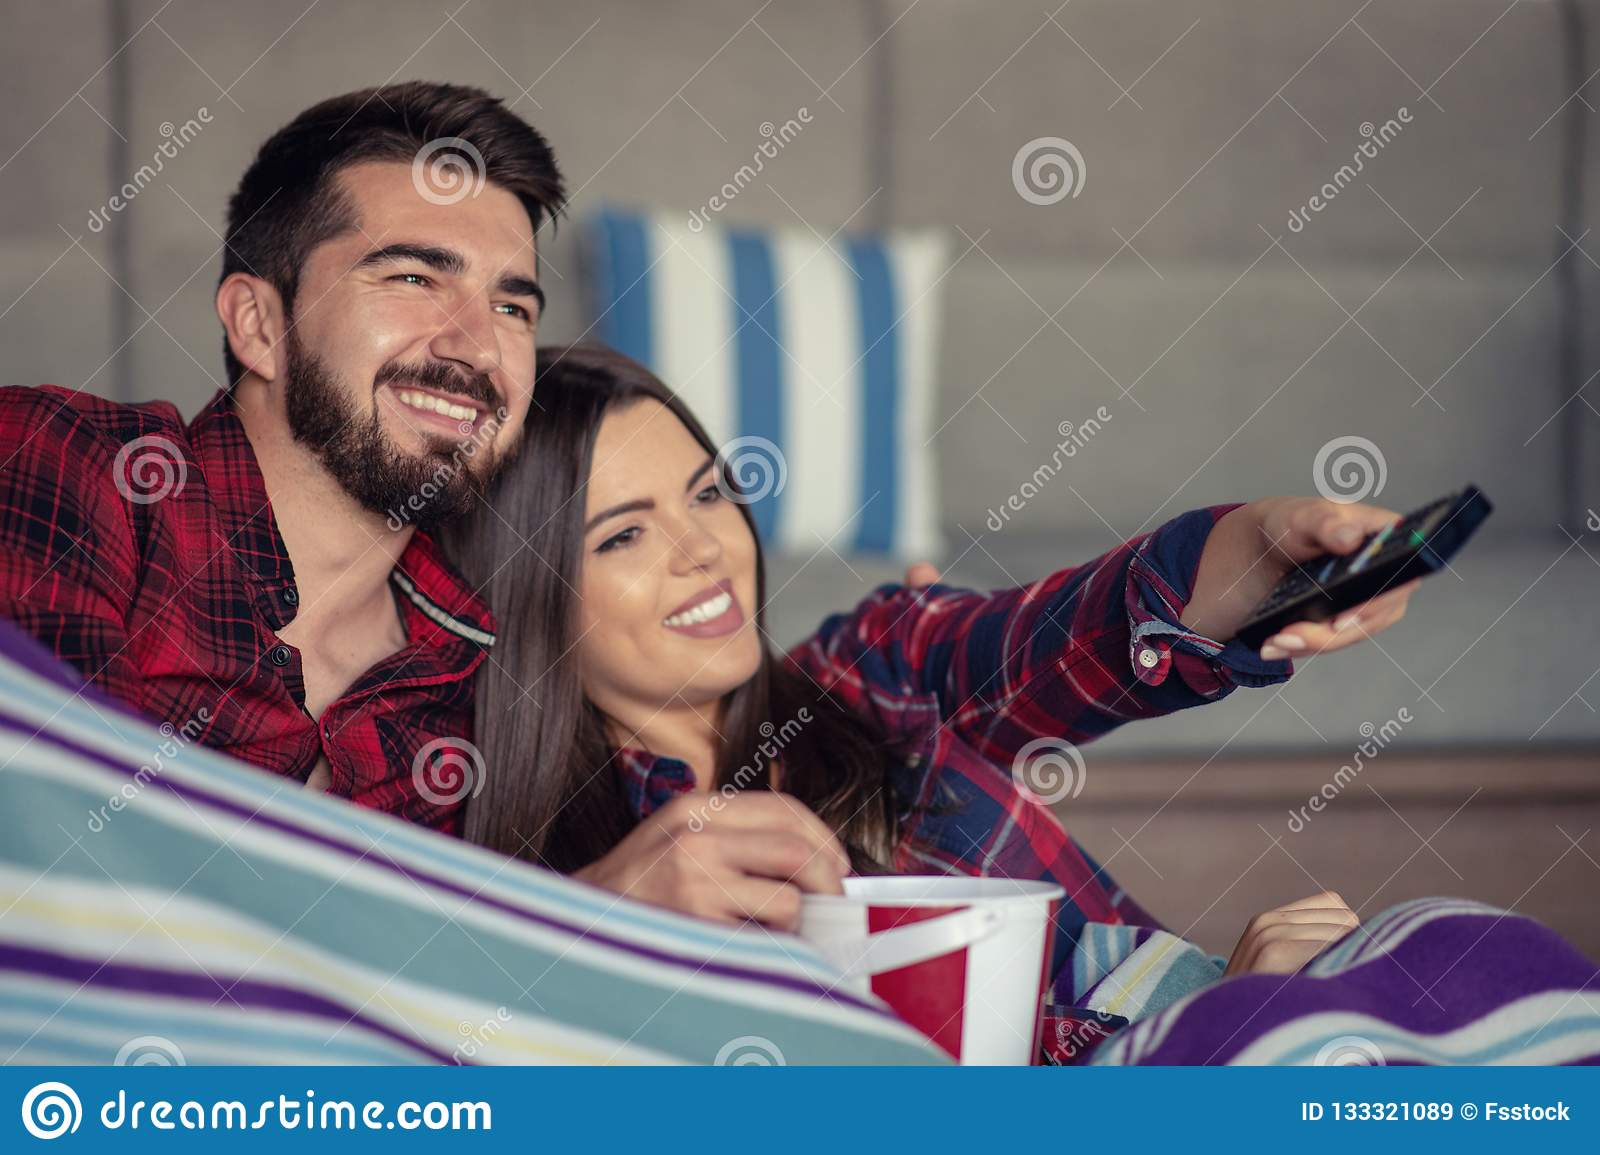 Couple in love enjoying their free time, sitting on a couch next to the window, playing video games and having fun.